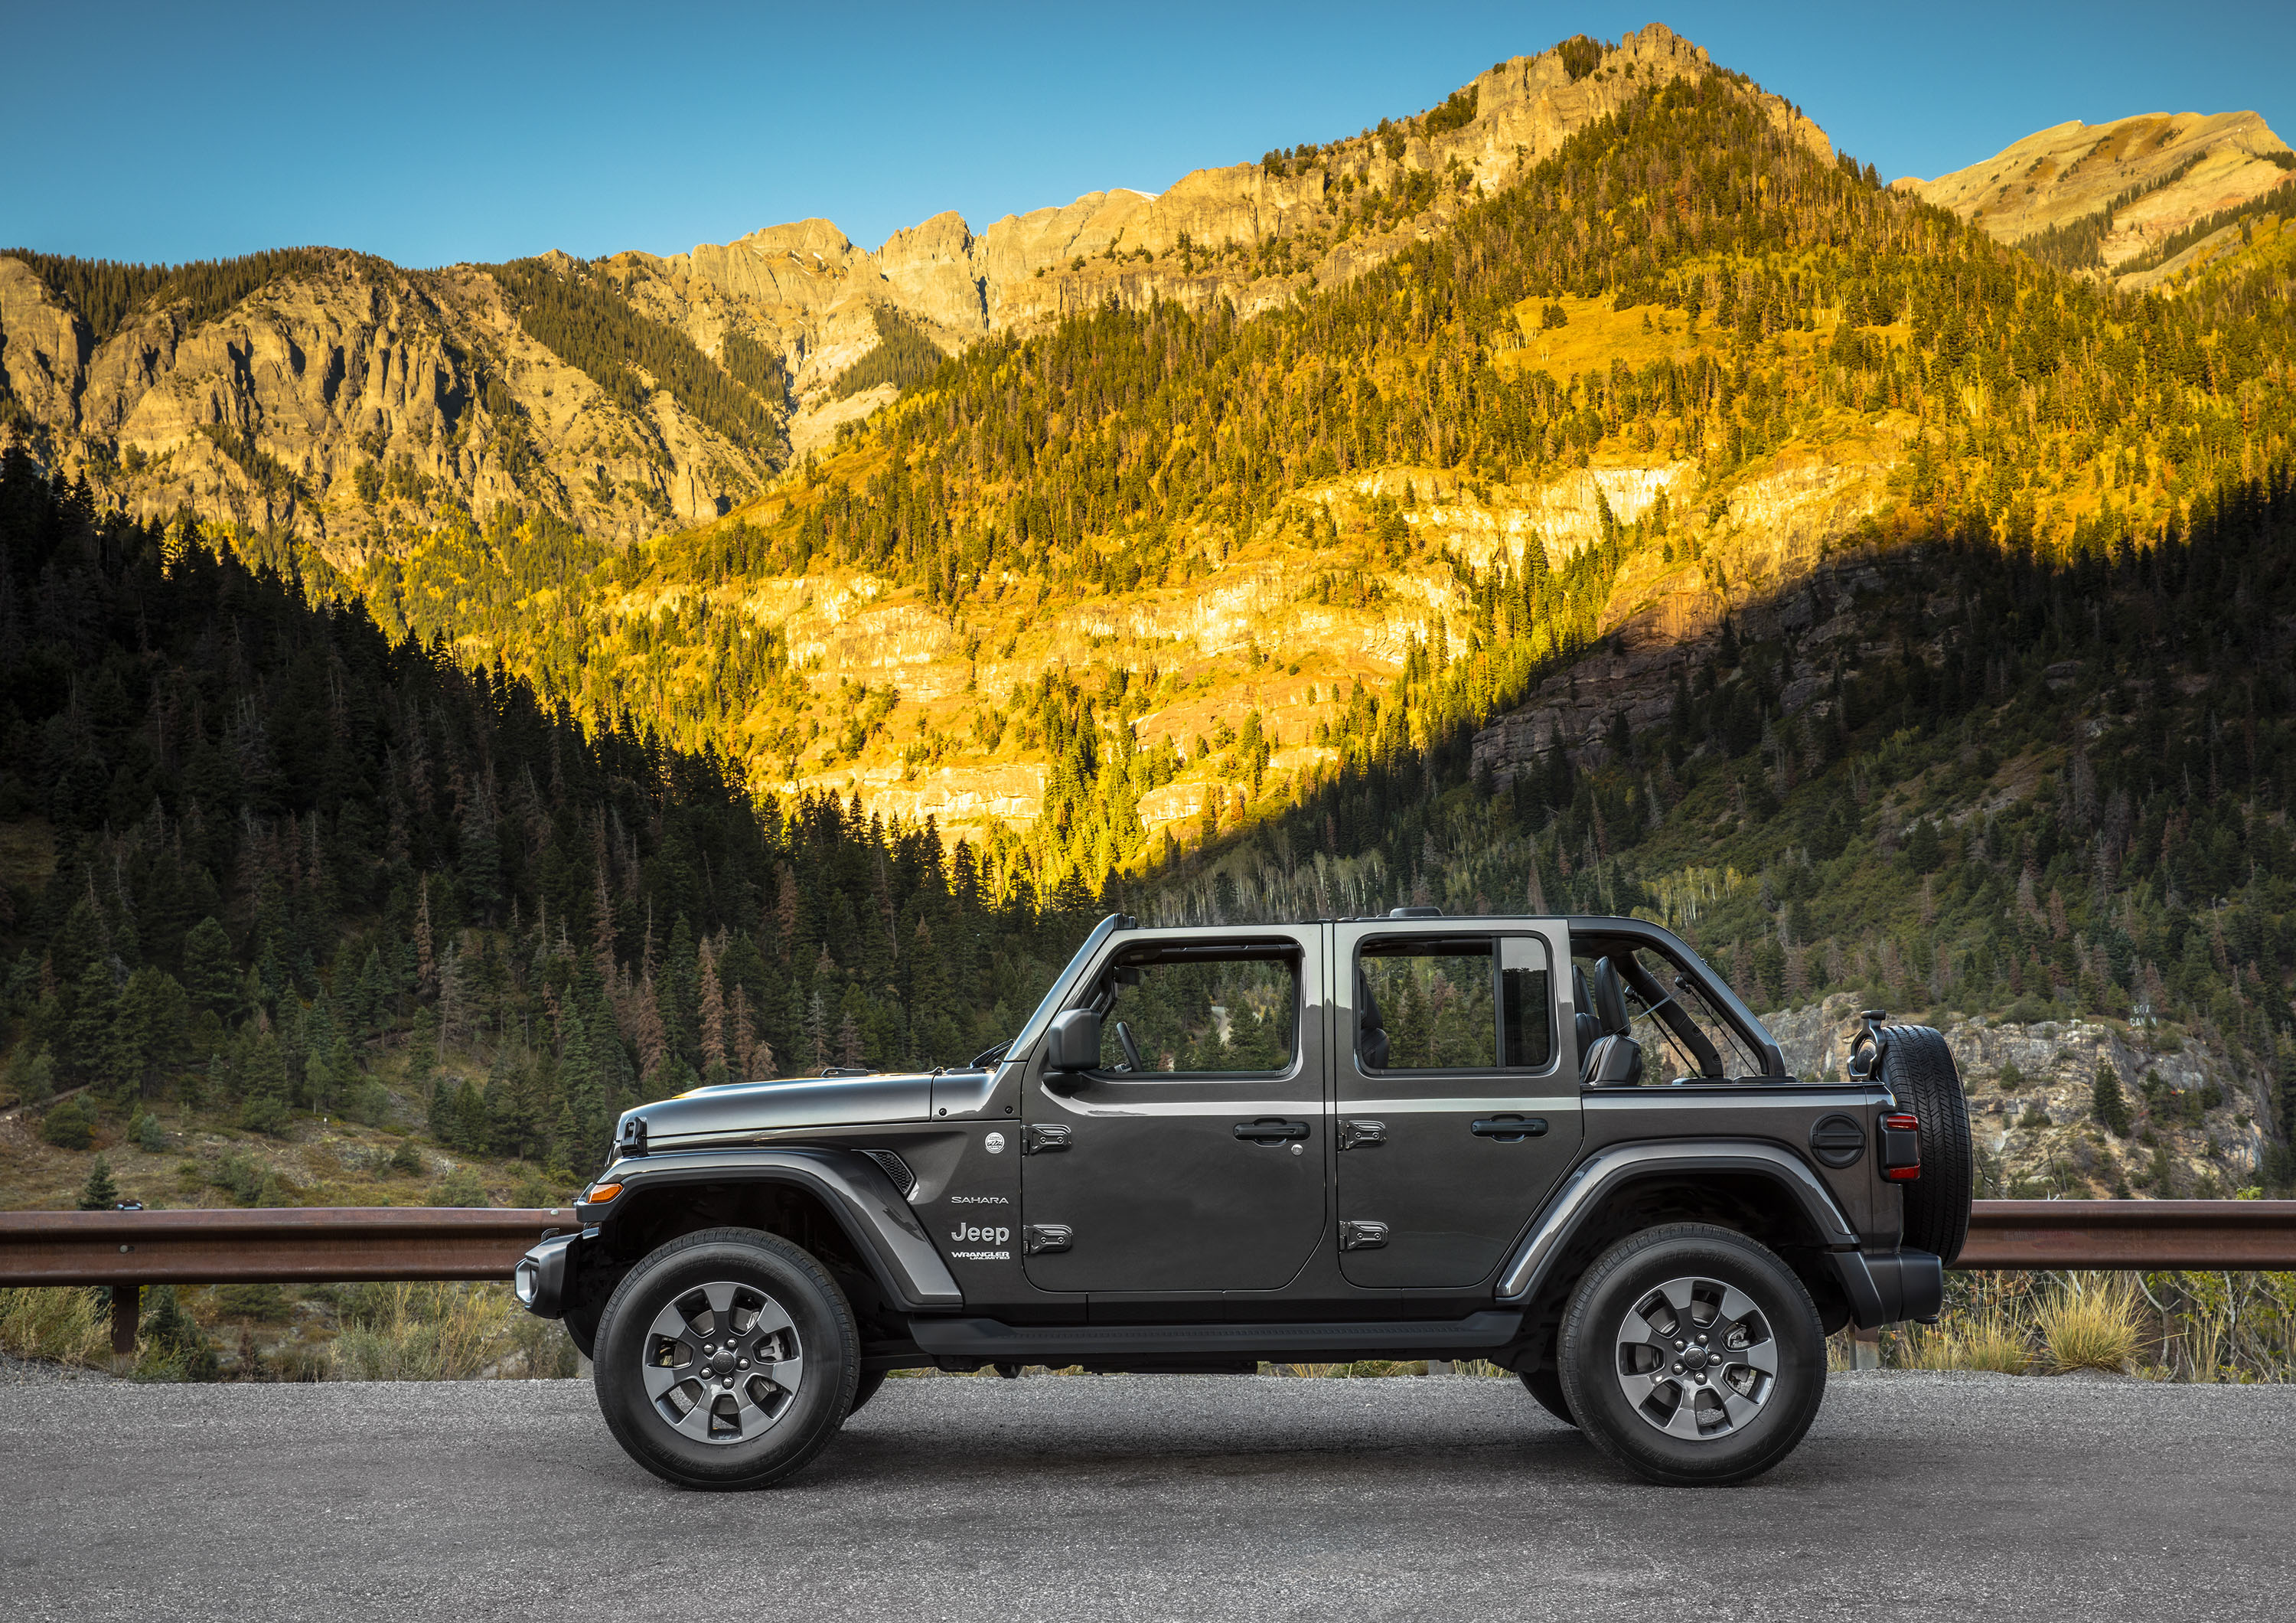 2018 Jeep Wrangler Can Tow As Much As 3,500 Pounds | Top Speed